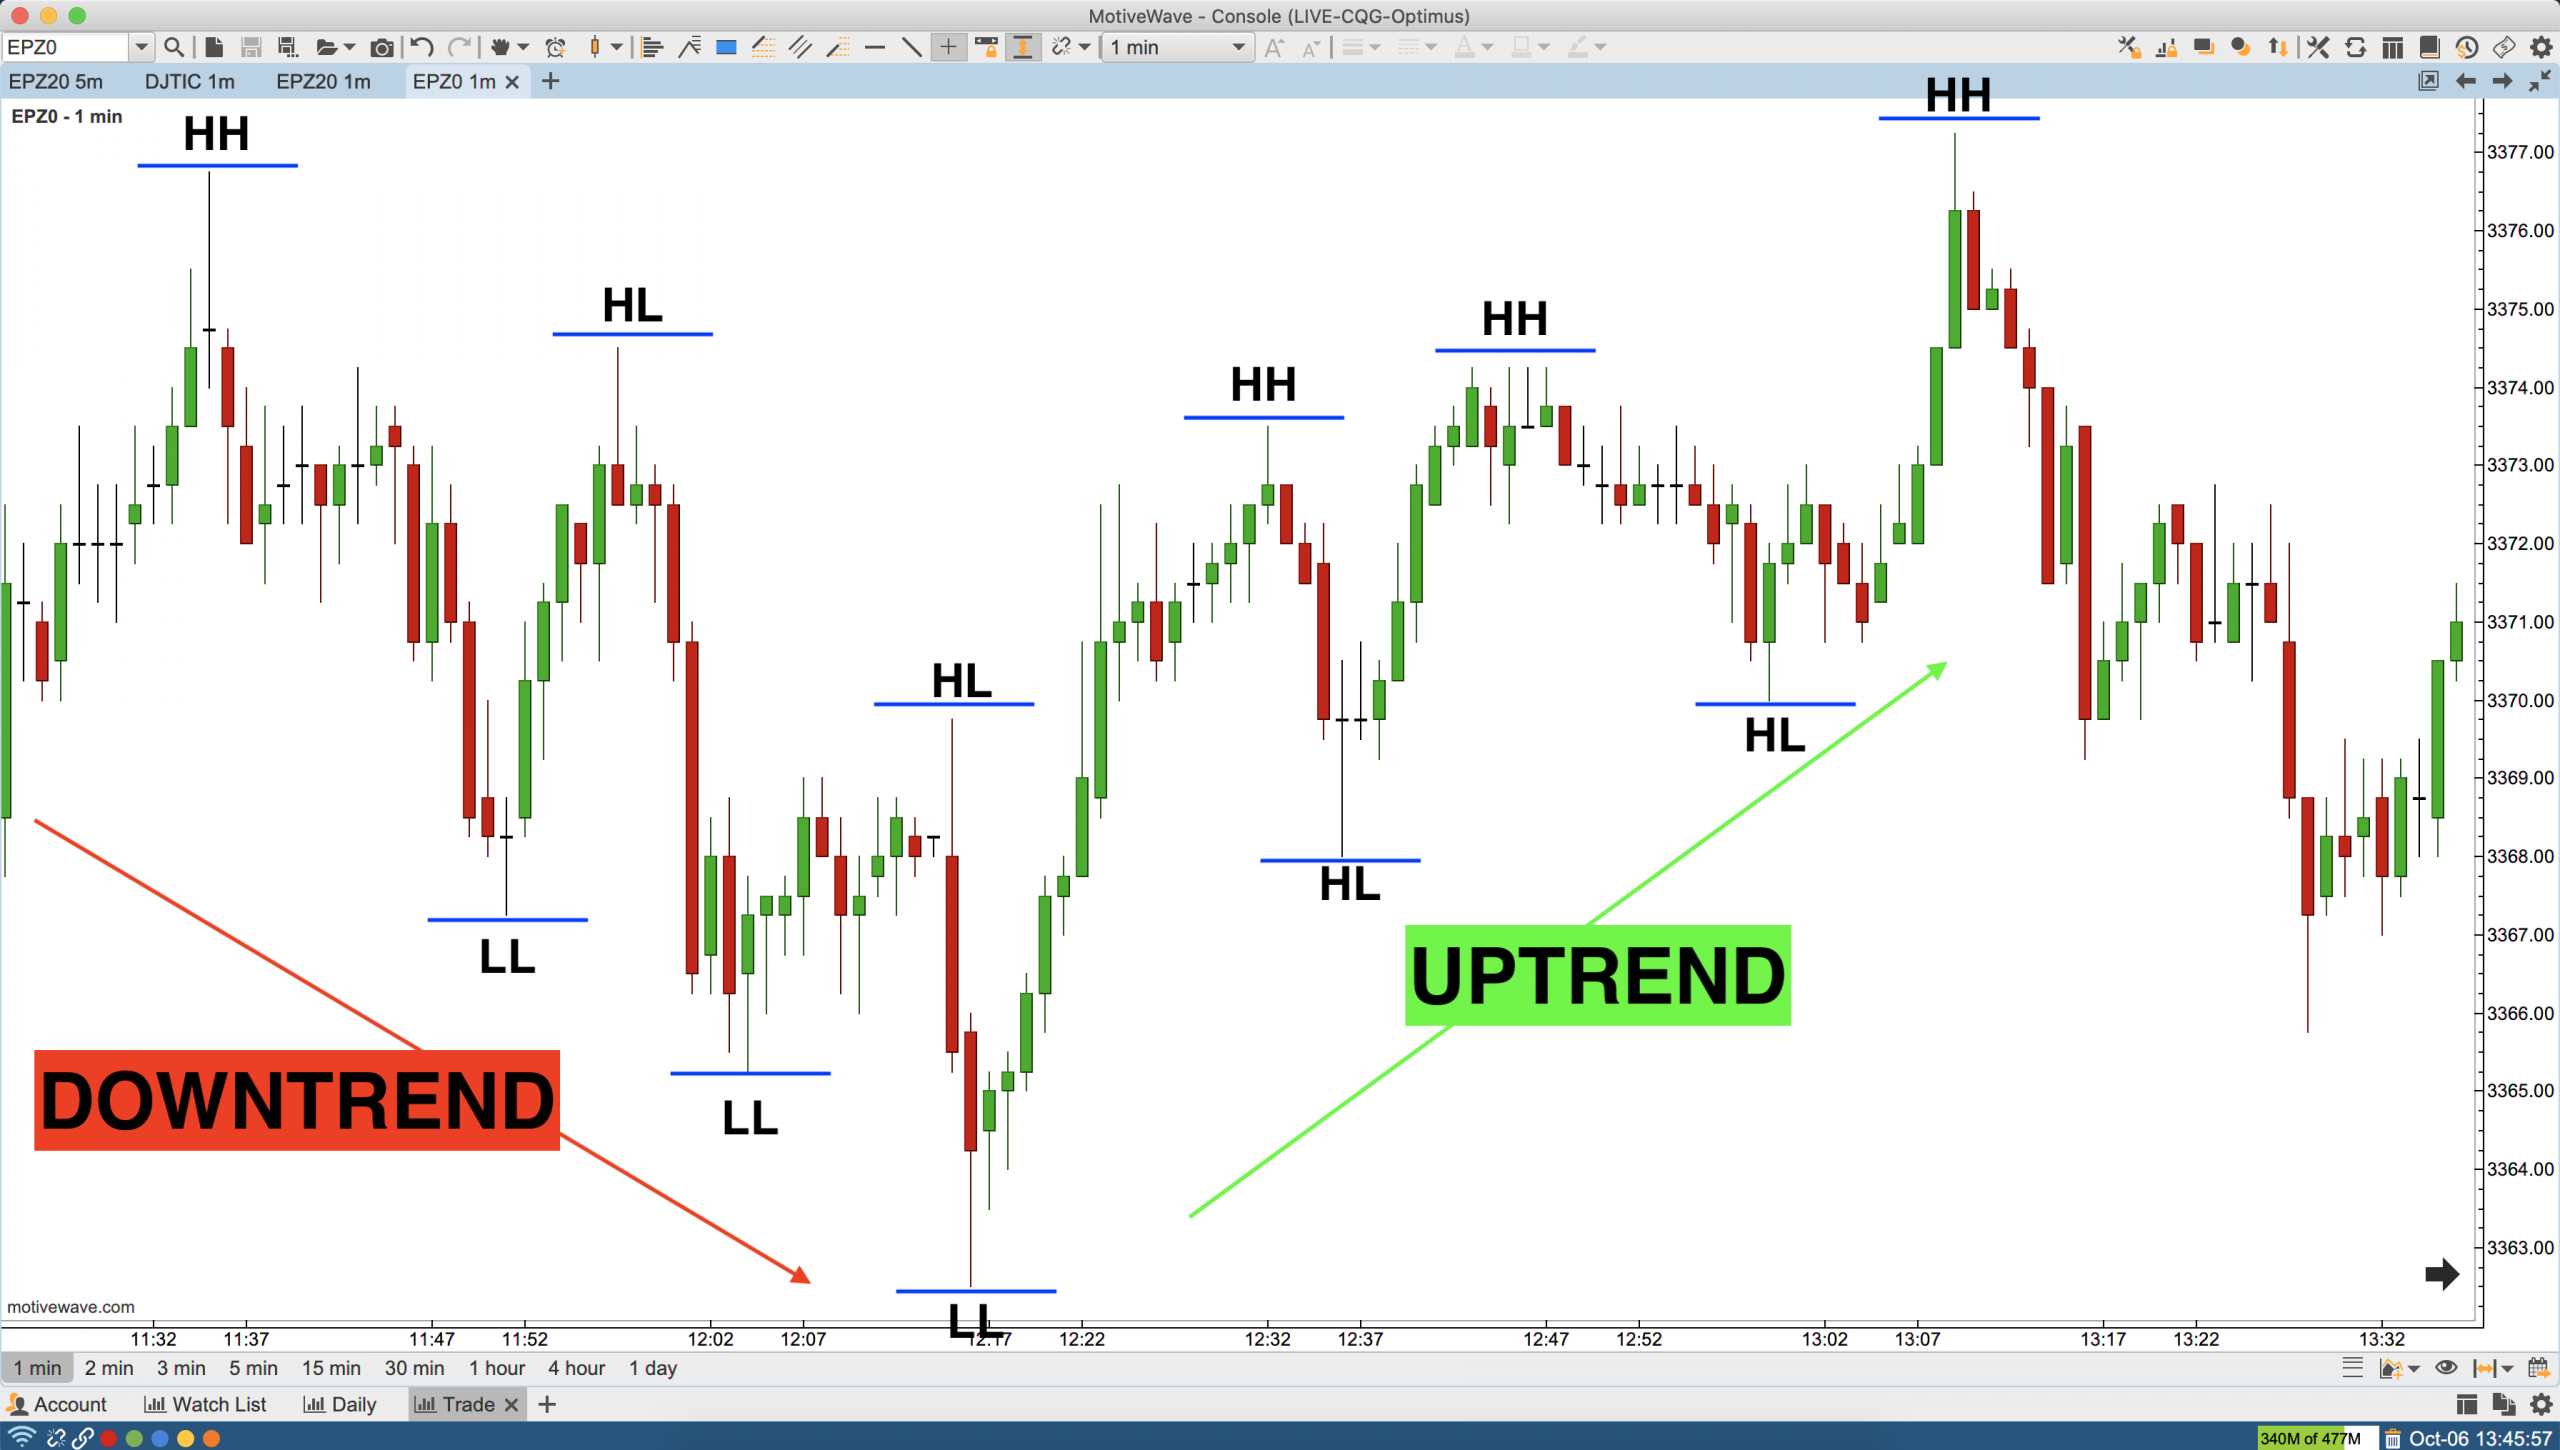 eMini S&P500 Uptrend and Downtrend